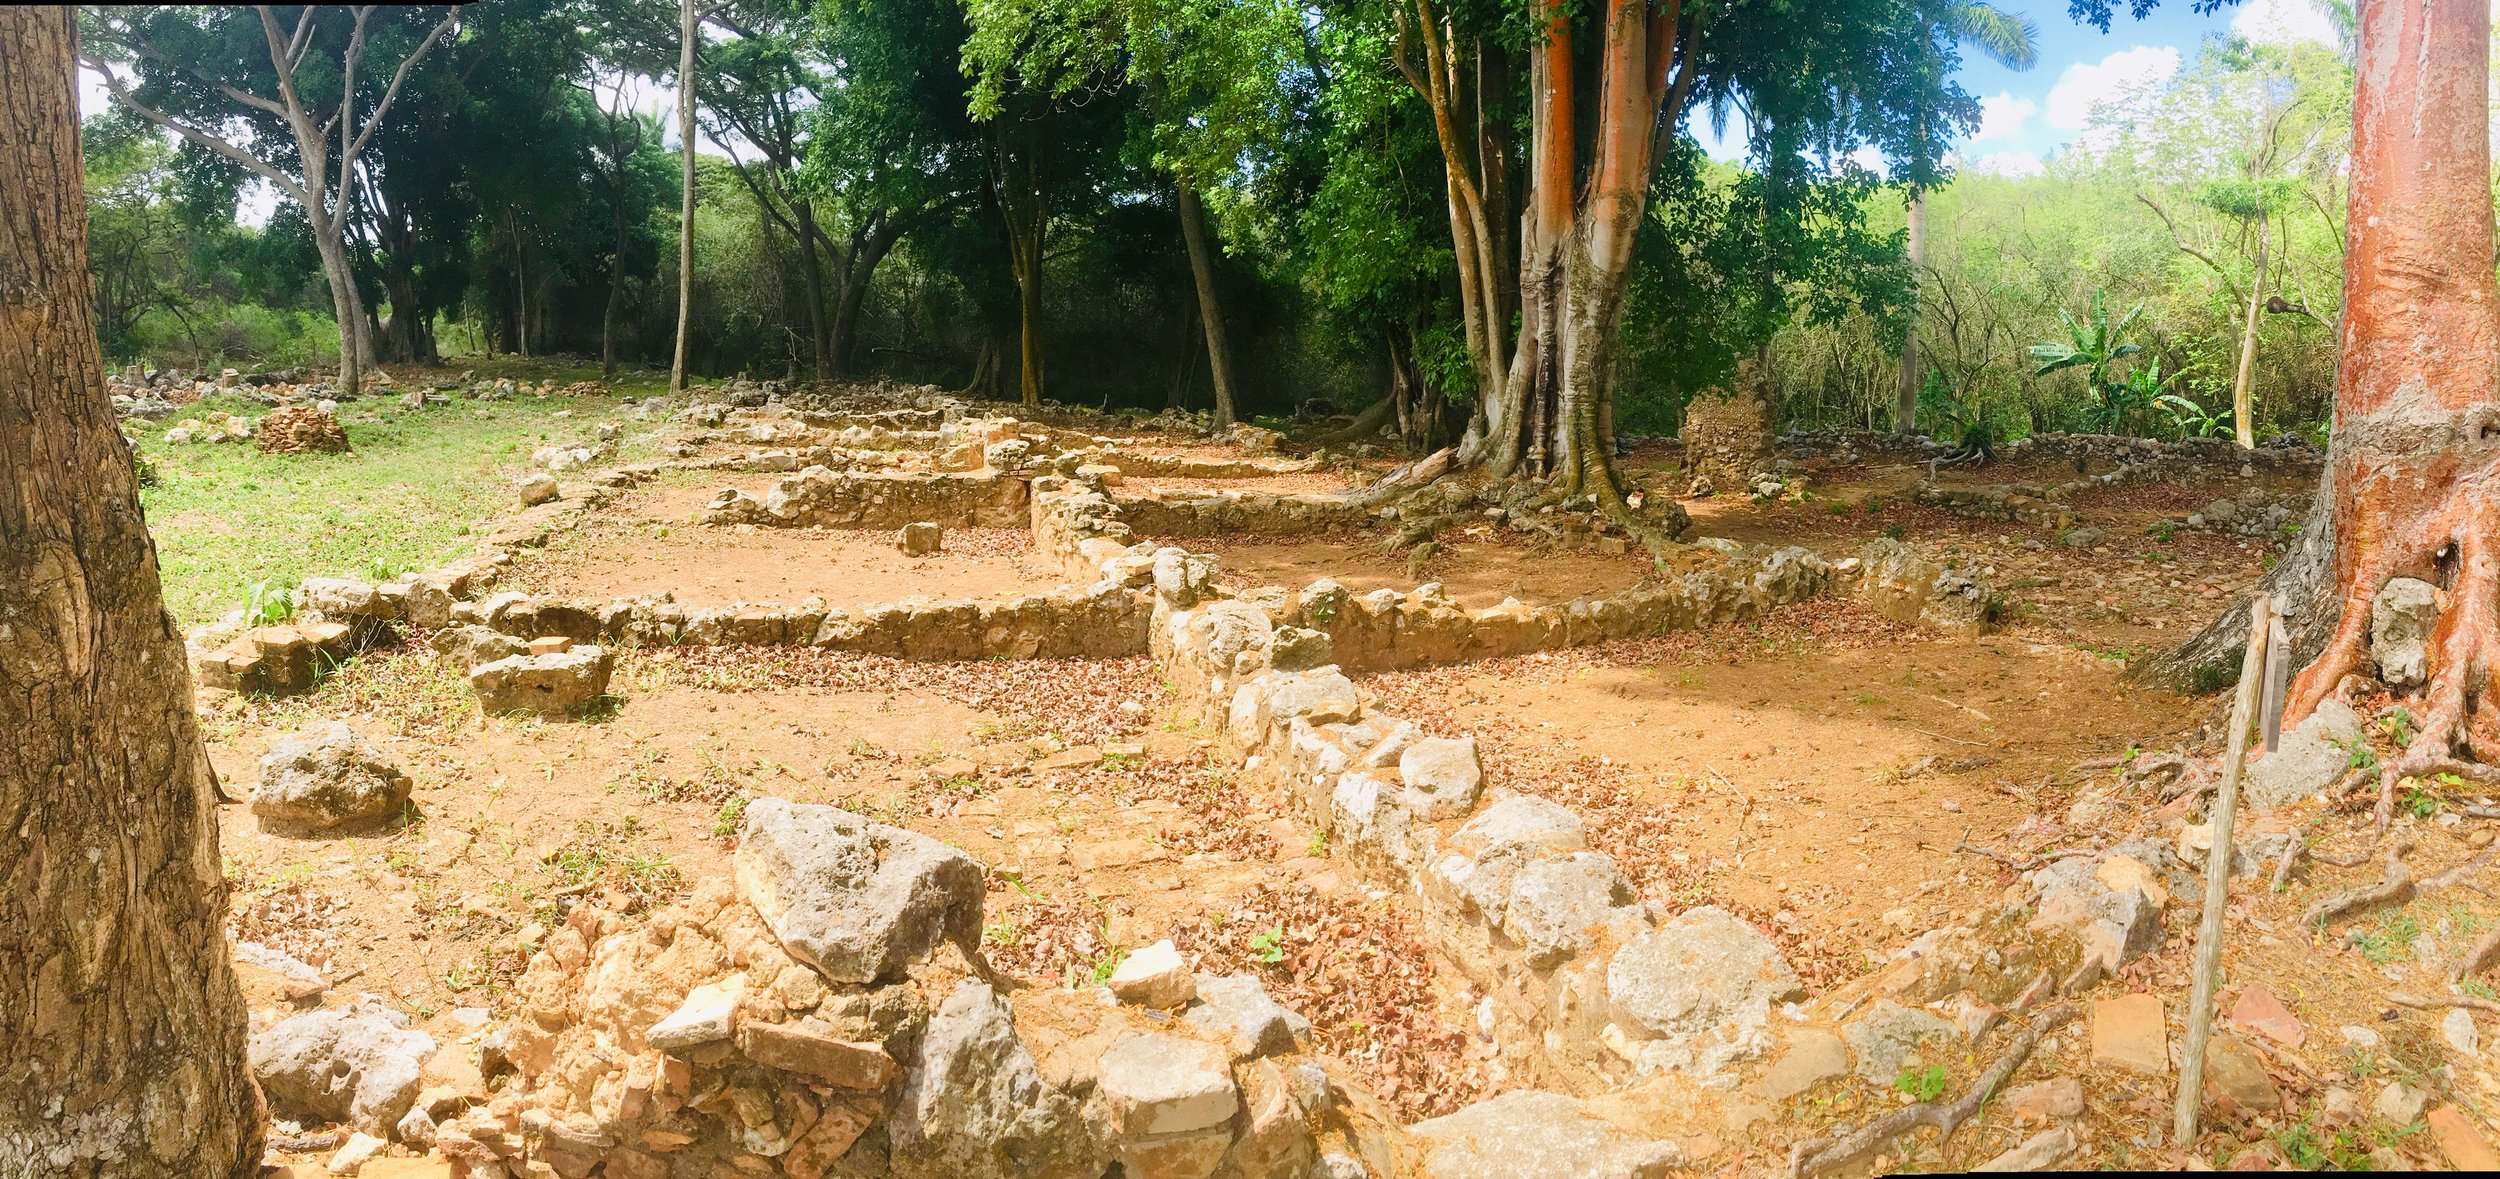 This is what's left of the slave quarter in San Isidro.